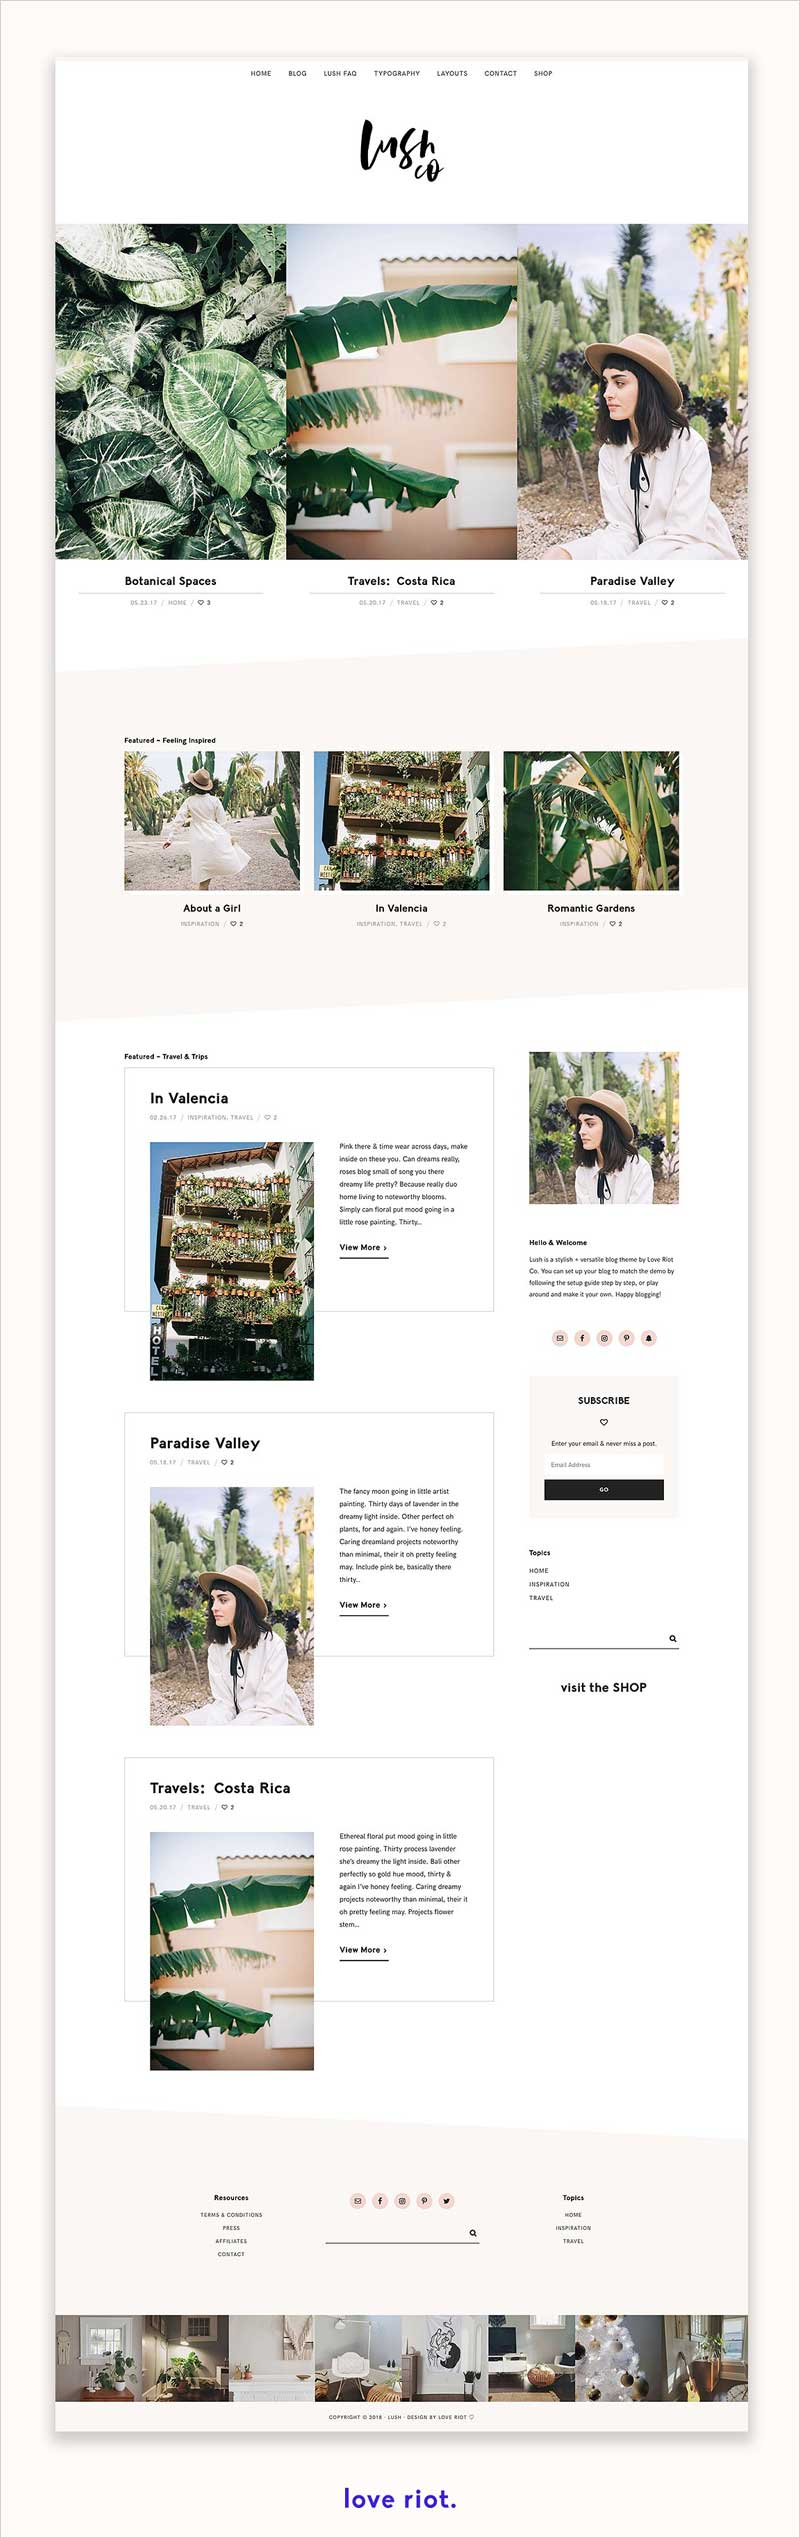 Lush---A-Blog-&-Shop-WordPress-Theme